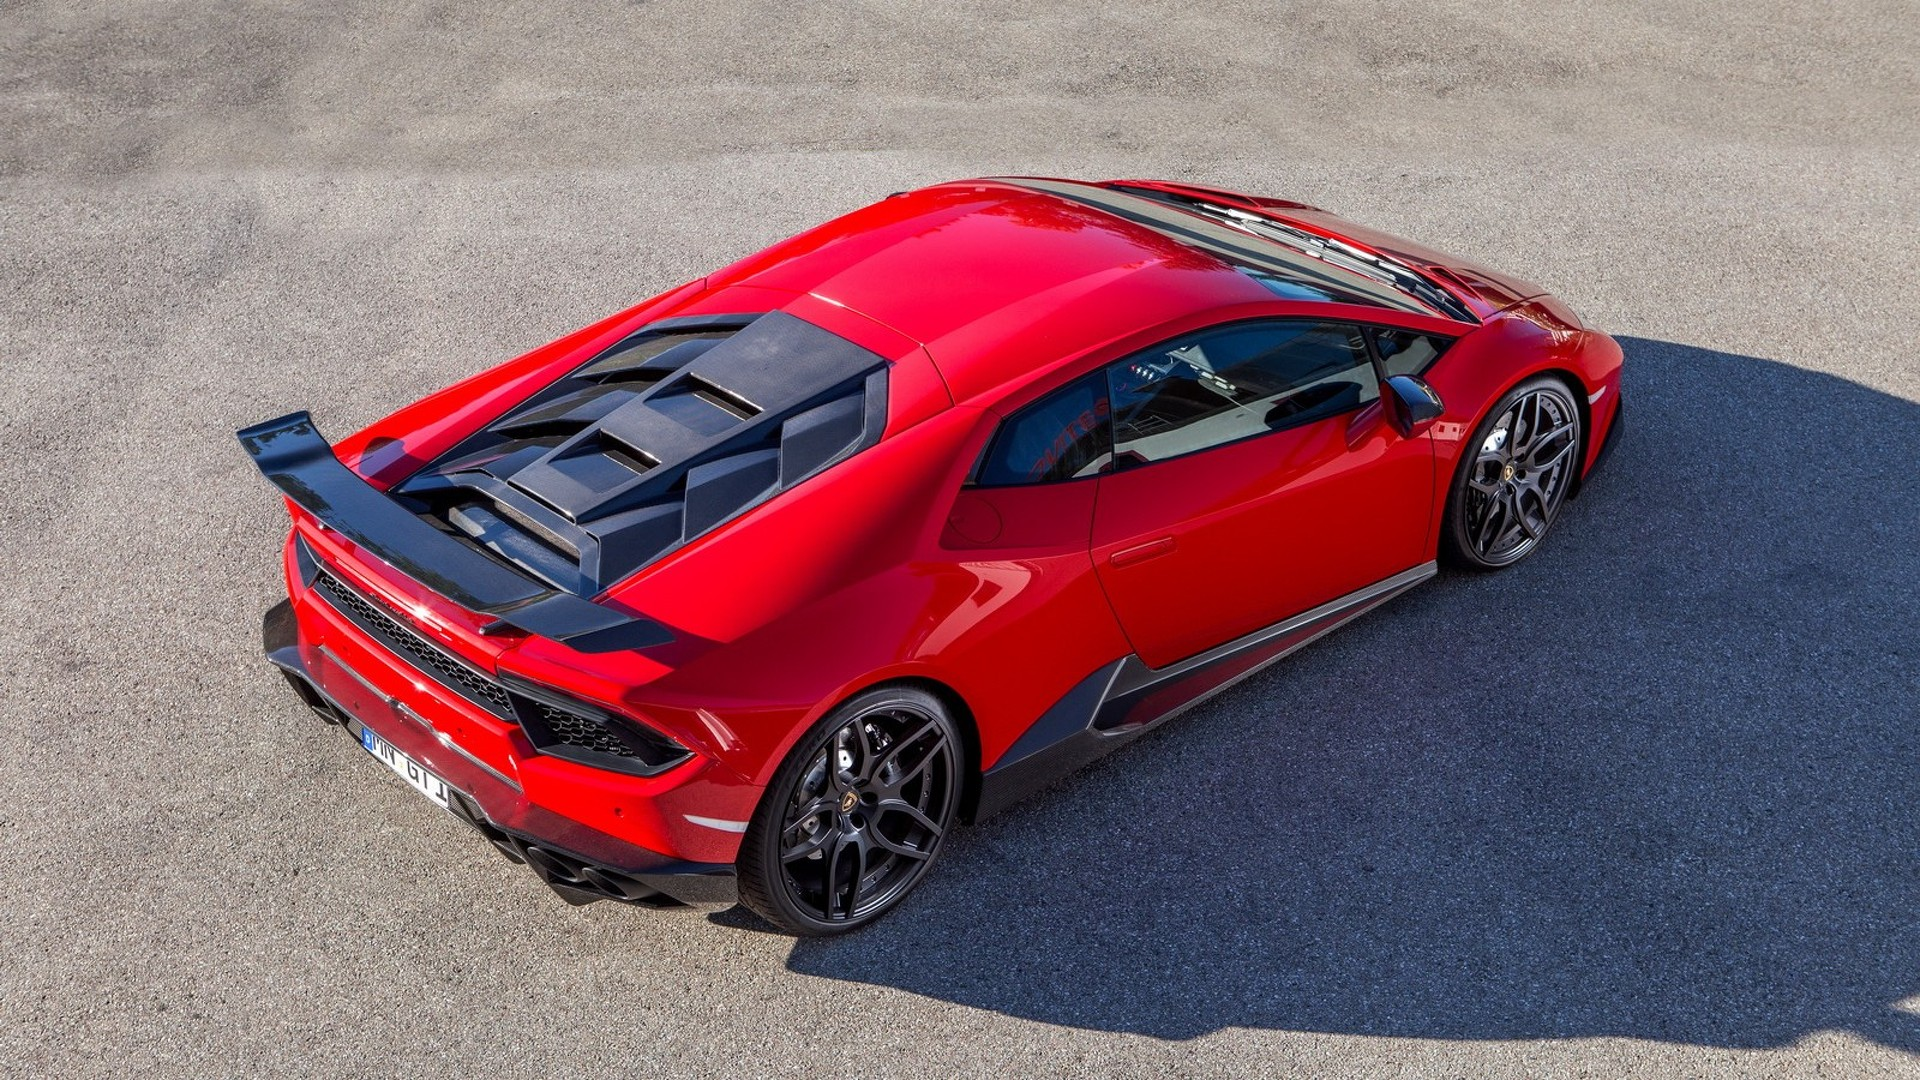 Limited edition Lamborghini Huracan Avio launched ln India at Rs 3.71 Crore